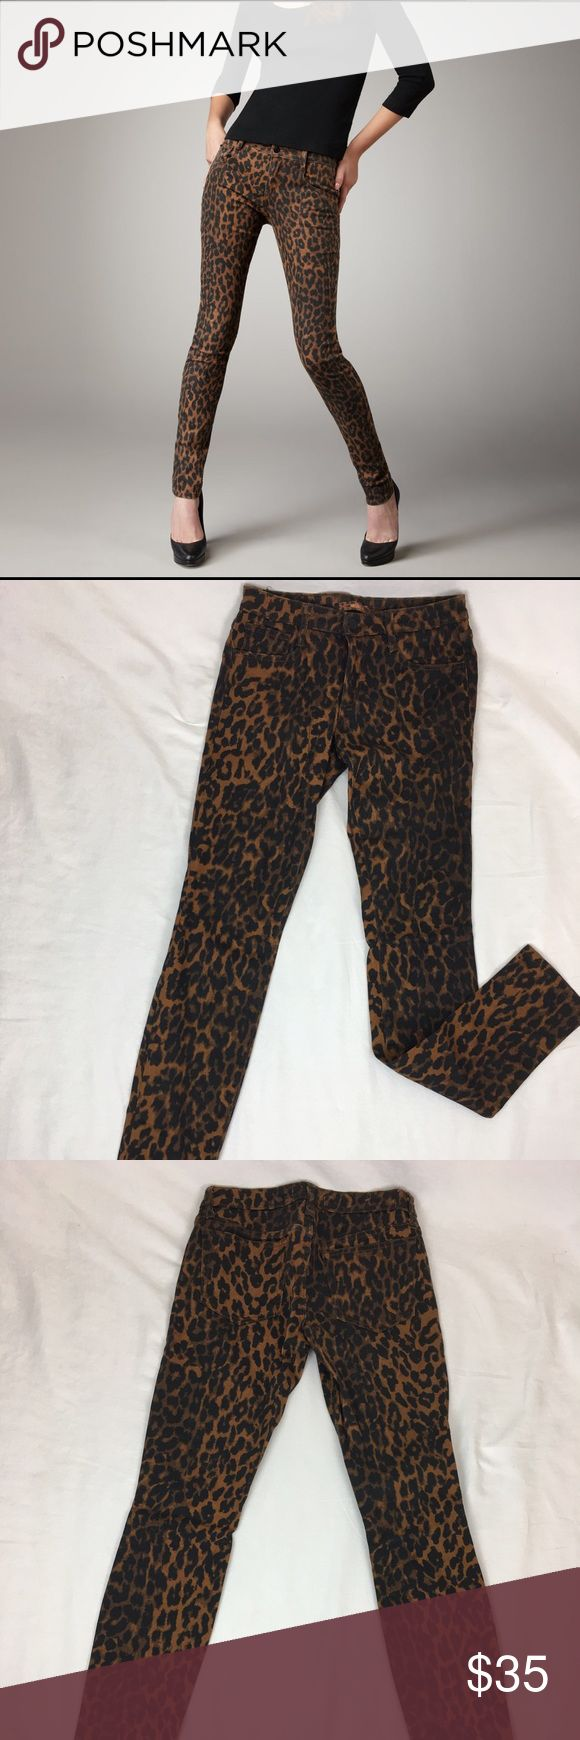 Joe's Jeans Animal Print Skinny Jeans Animal print skinny jeans from Joe's Jeans. EUC. Size 27. Joe's Jeans Jeans Skinny